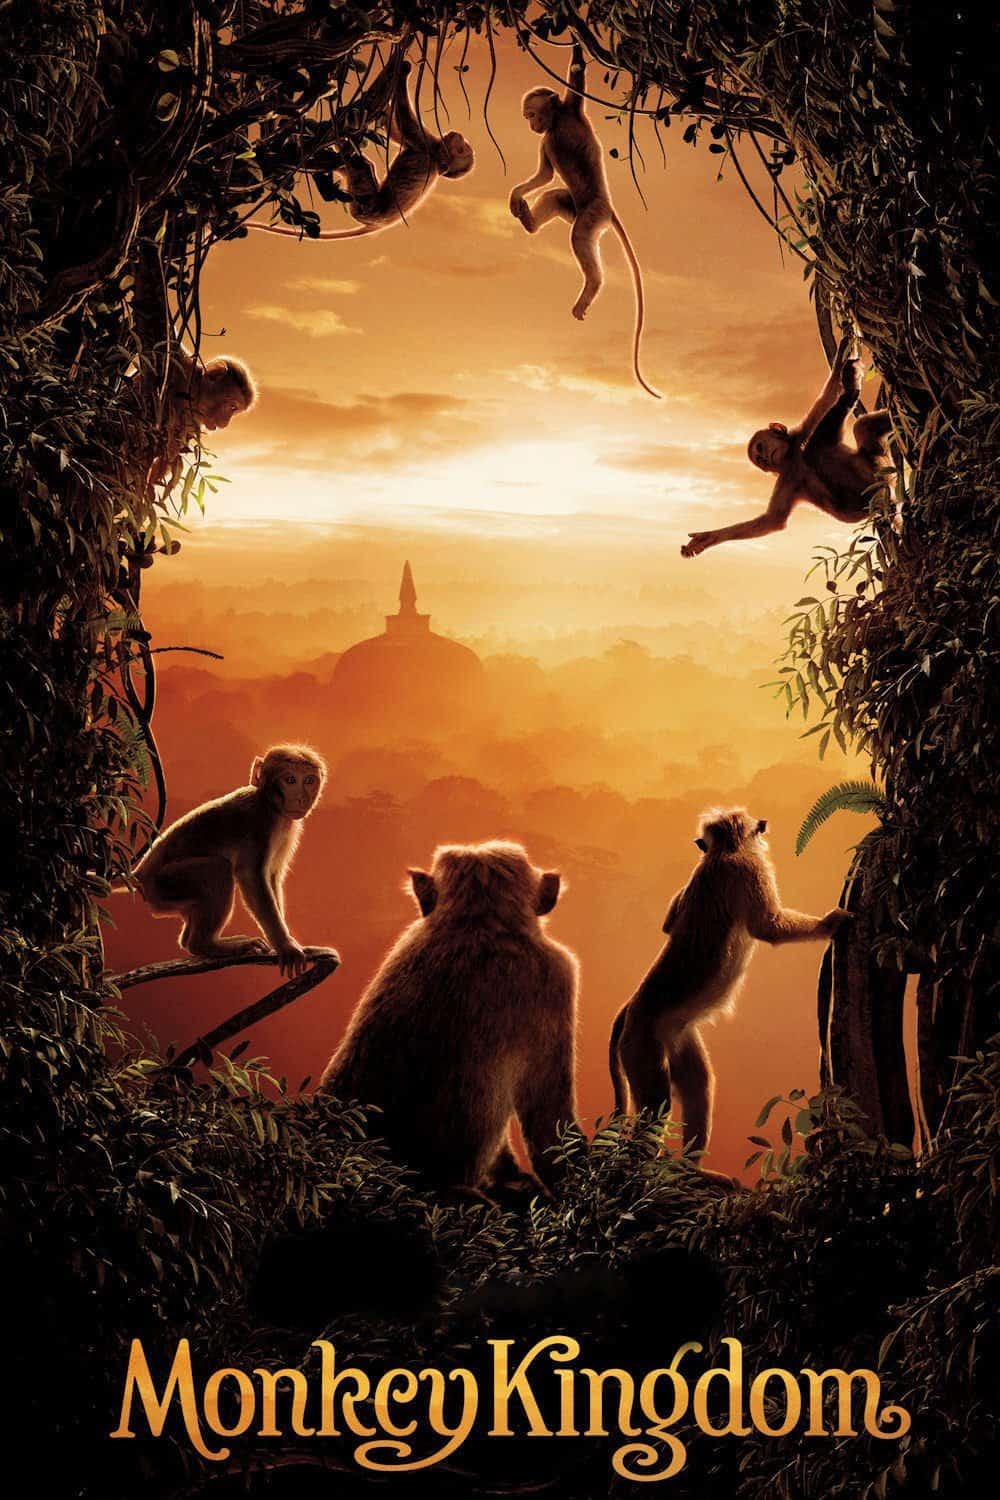 Monkey Kingdom, 2015